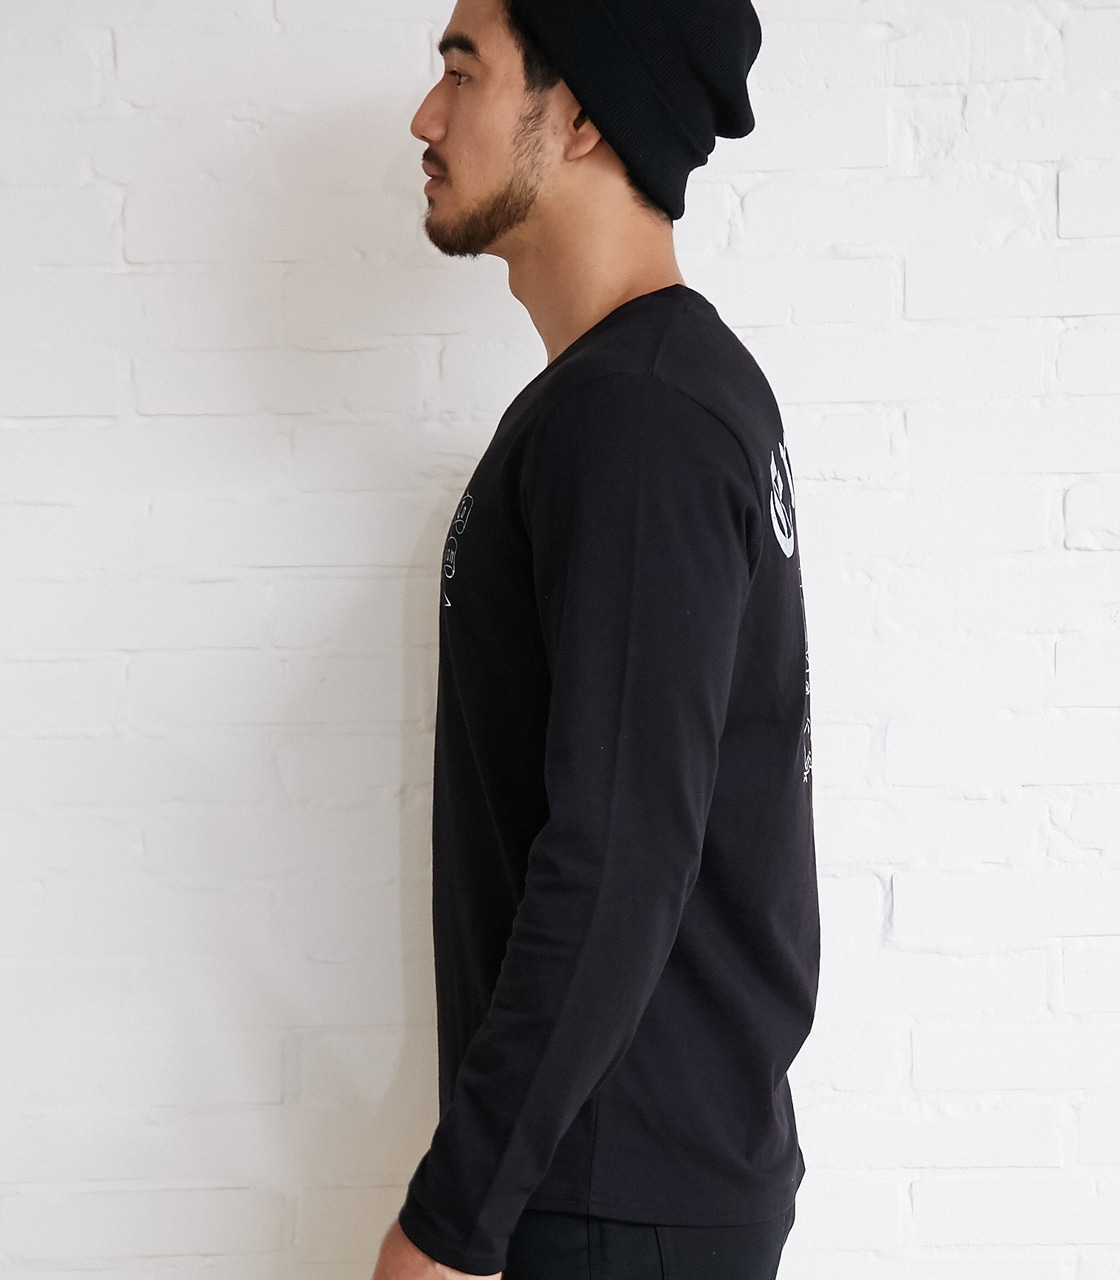 【AZUL BY MOUSSY】Eminent天竺長袖VネックT 詳細画像 BLK 6